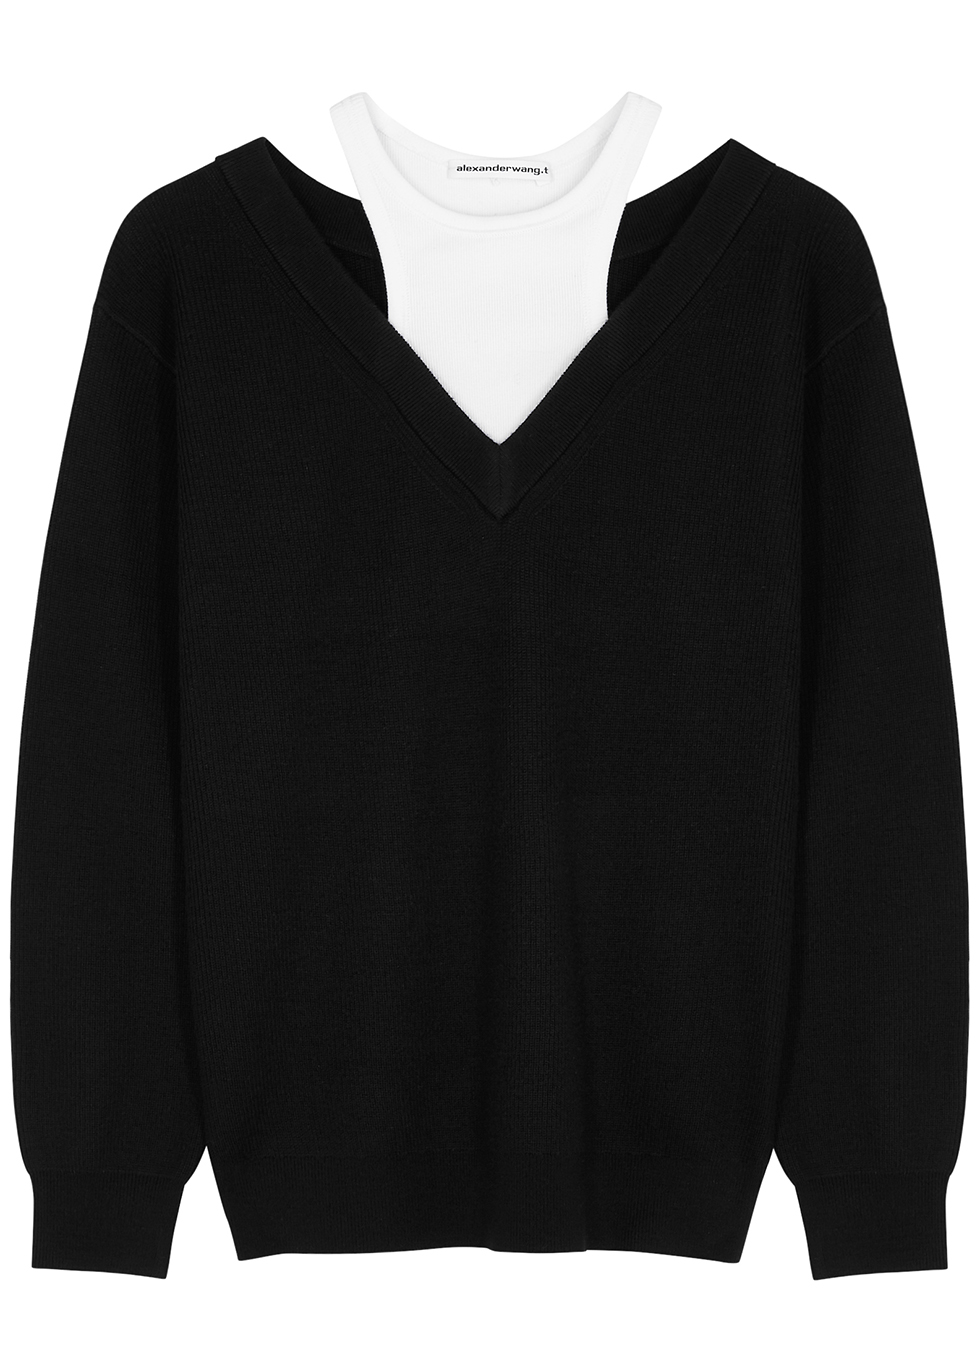 Monochrome layered wool and jersey jumper